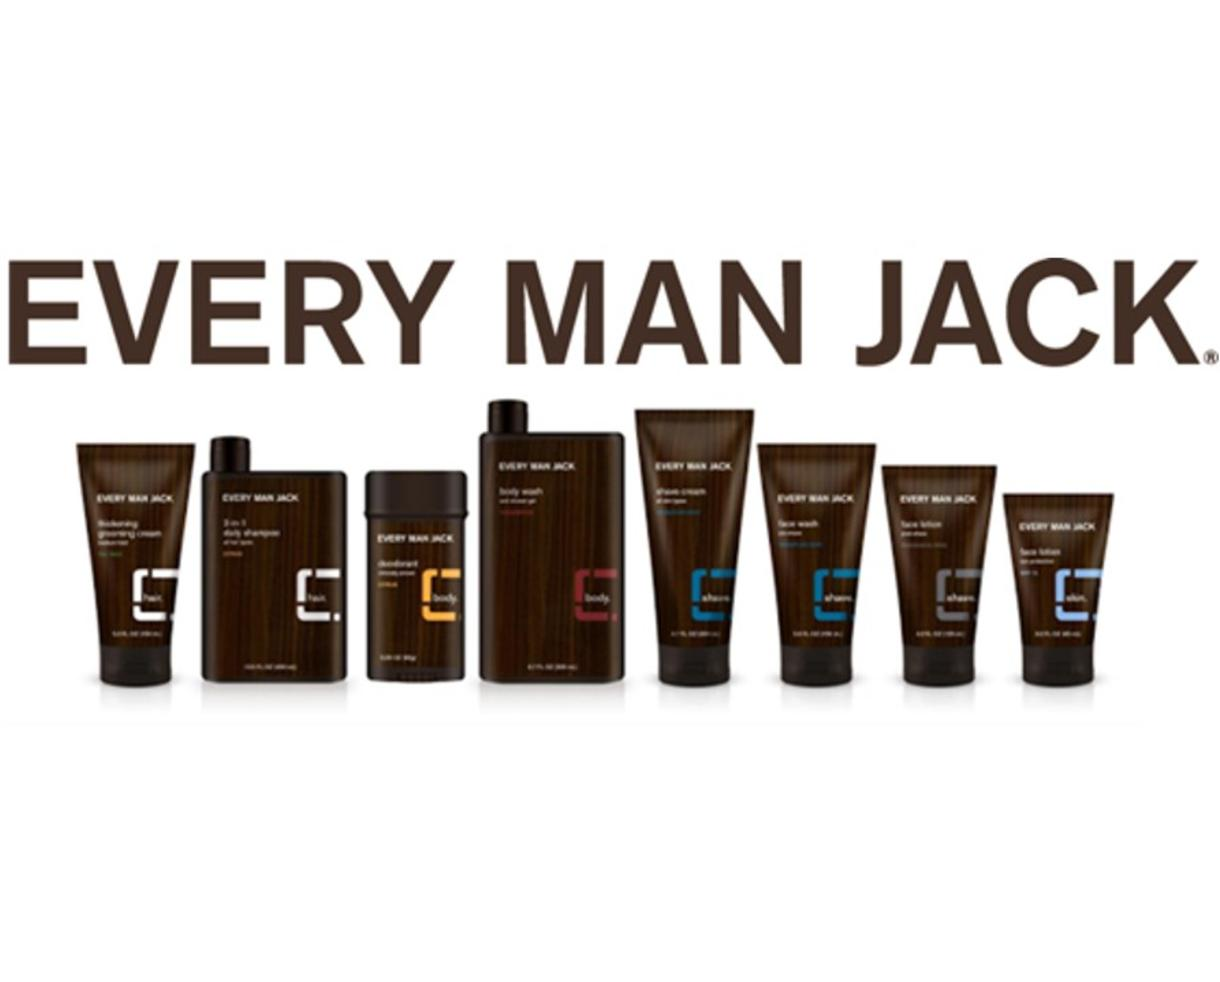 Shop Target for Every Man Jack. For a wide assortment of Every Man Jack visit adalatblog.ml today. Free shipping & returns plus same-day pick-up in store.